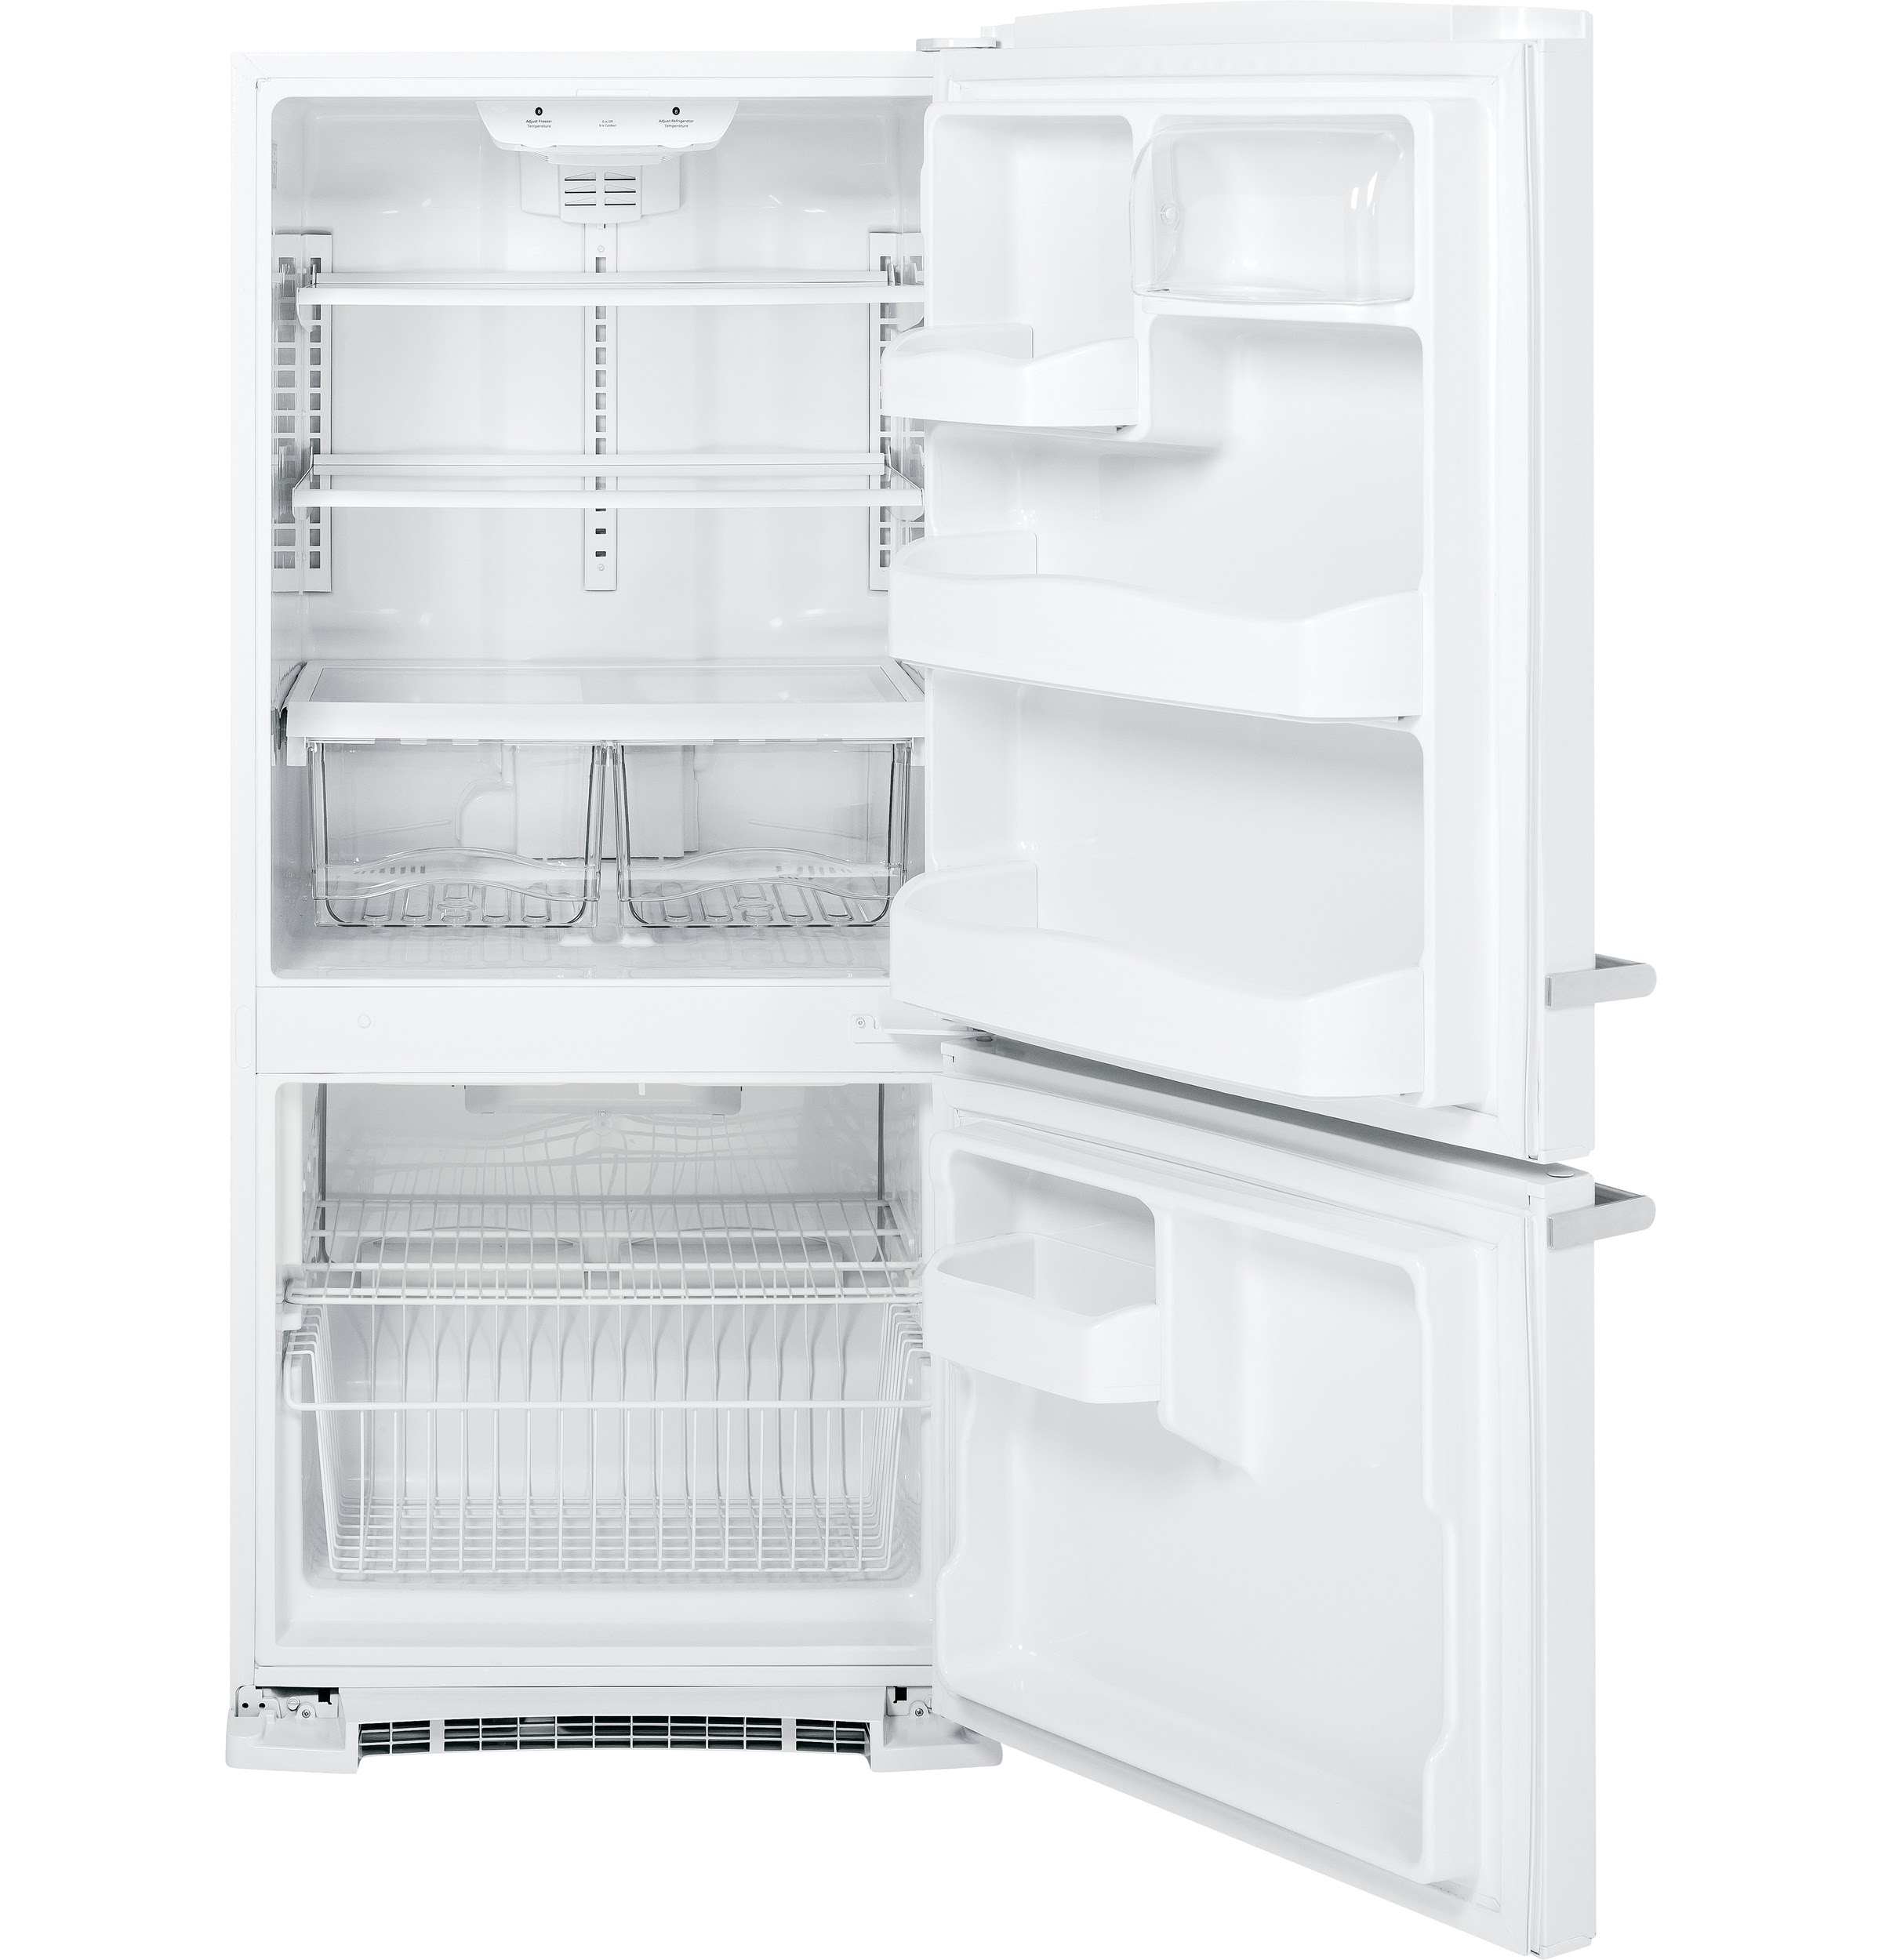 GE Artistry™ Series 20 3 Cu Ft Bottom Freezer Refrigerator